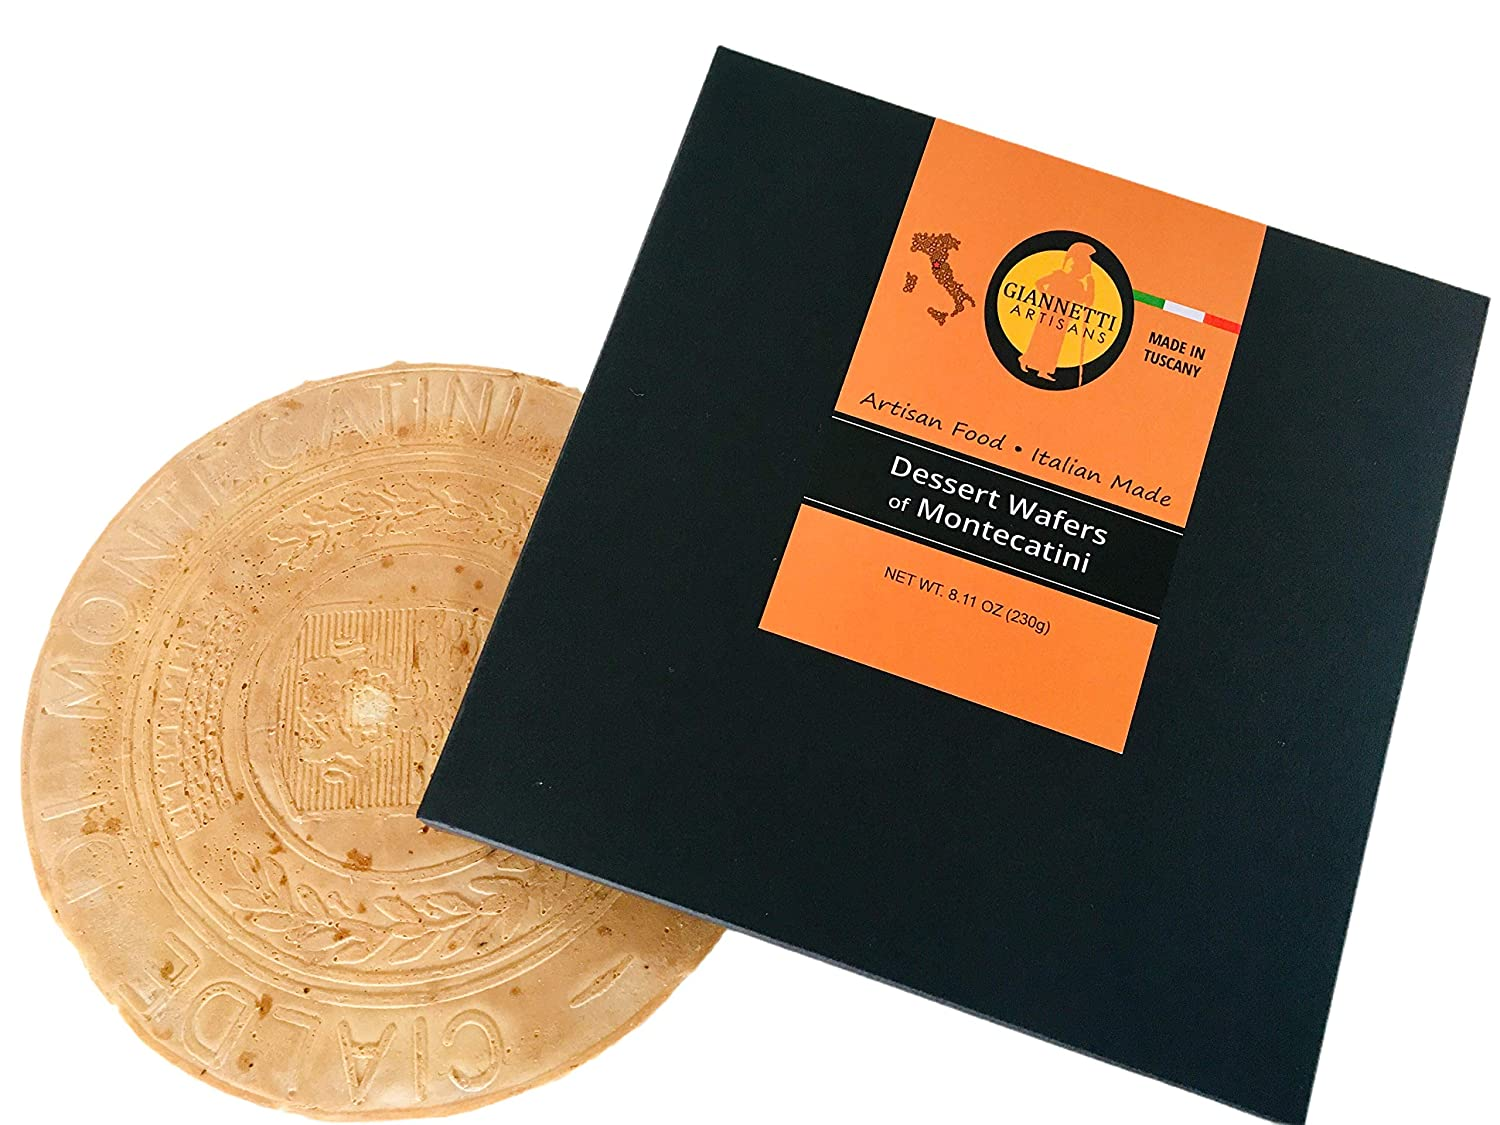 Giannetti Artisans Handmade Dessert Wafers - Cialde di Montecatini - Artisan Made with Italian Almonds, Imported from Tuscany - (8 Oz box)